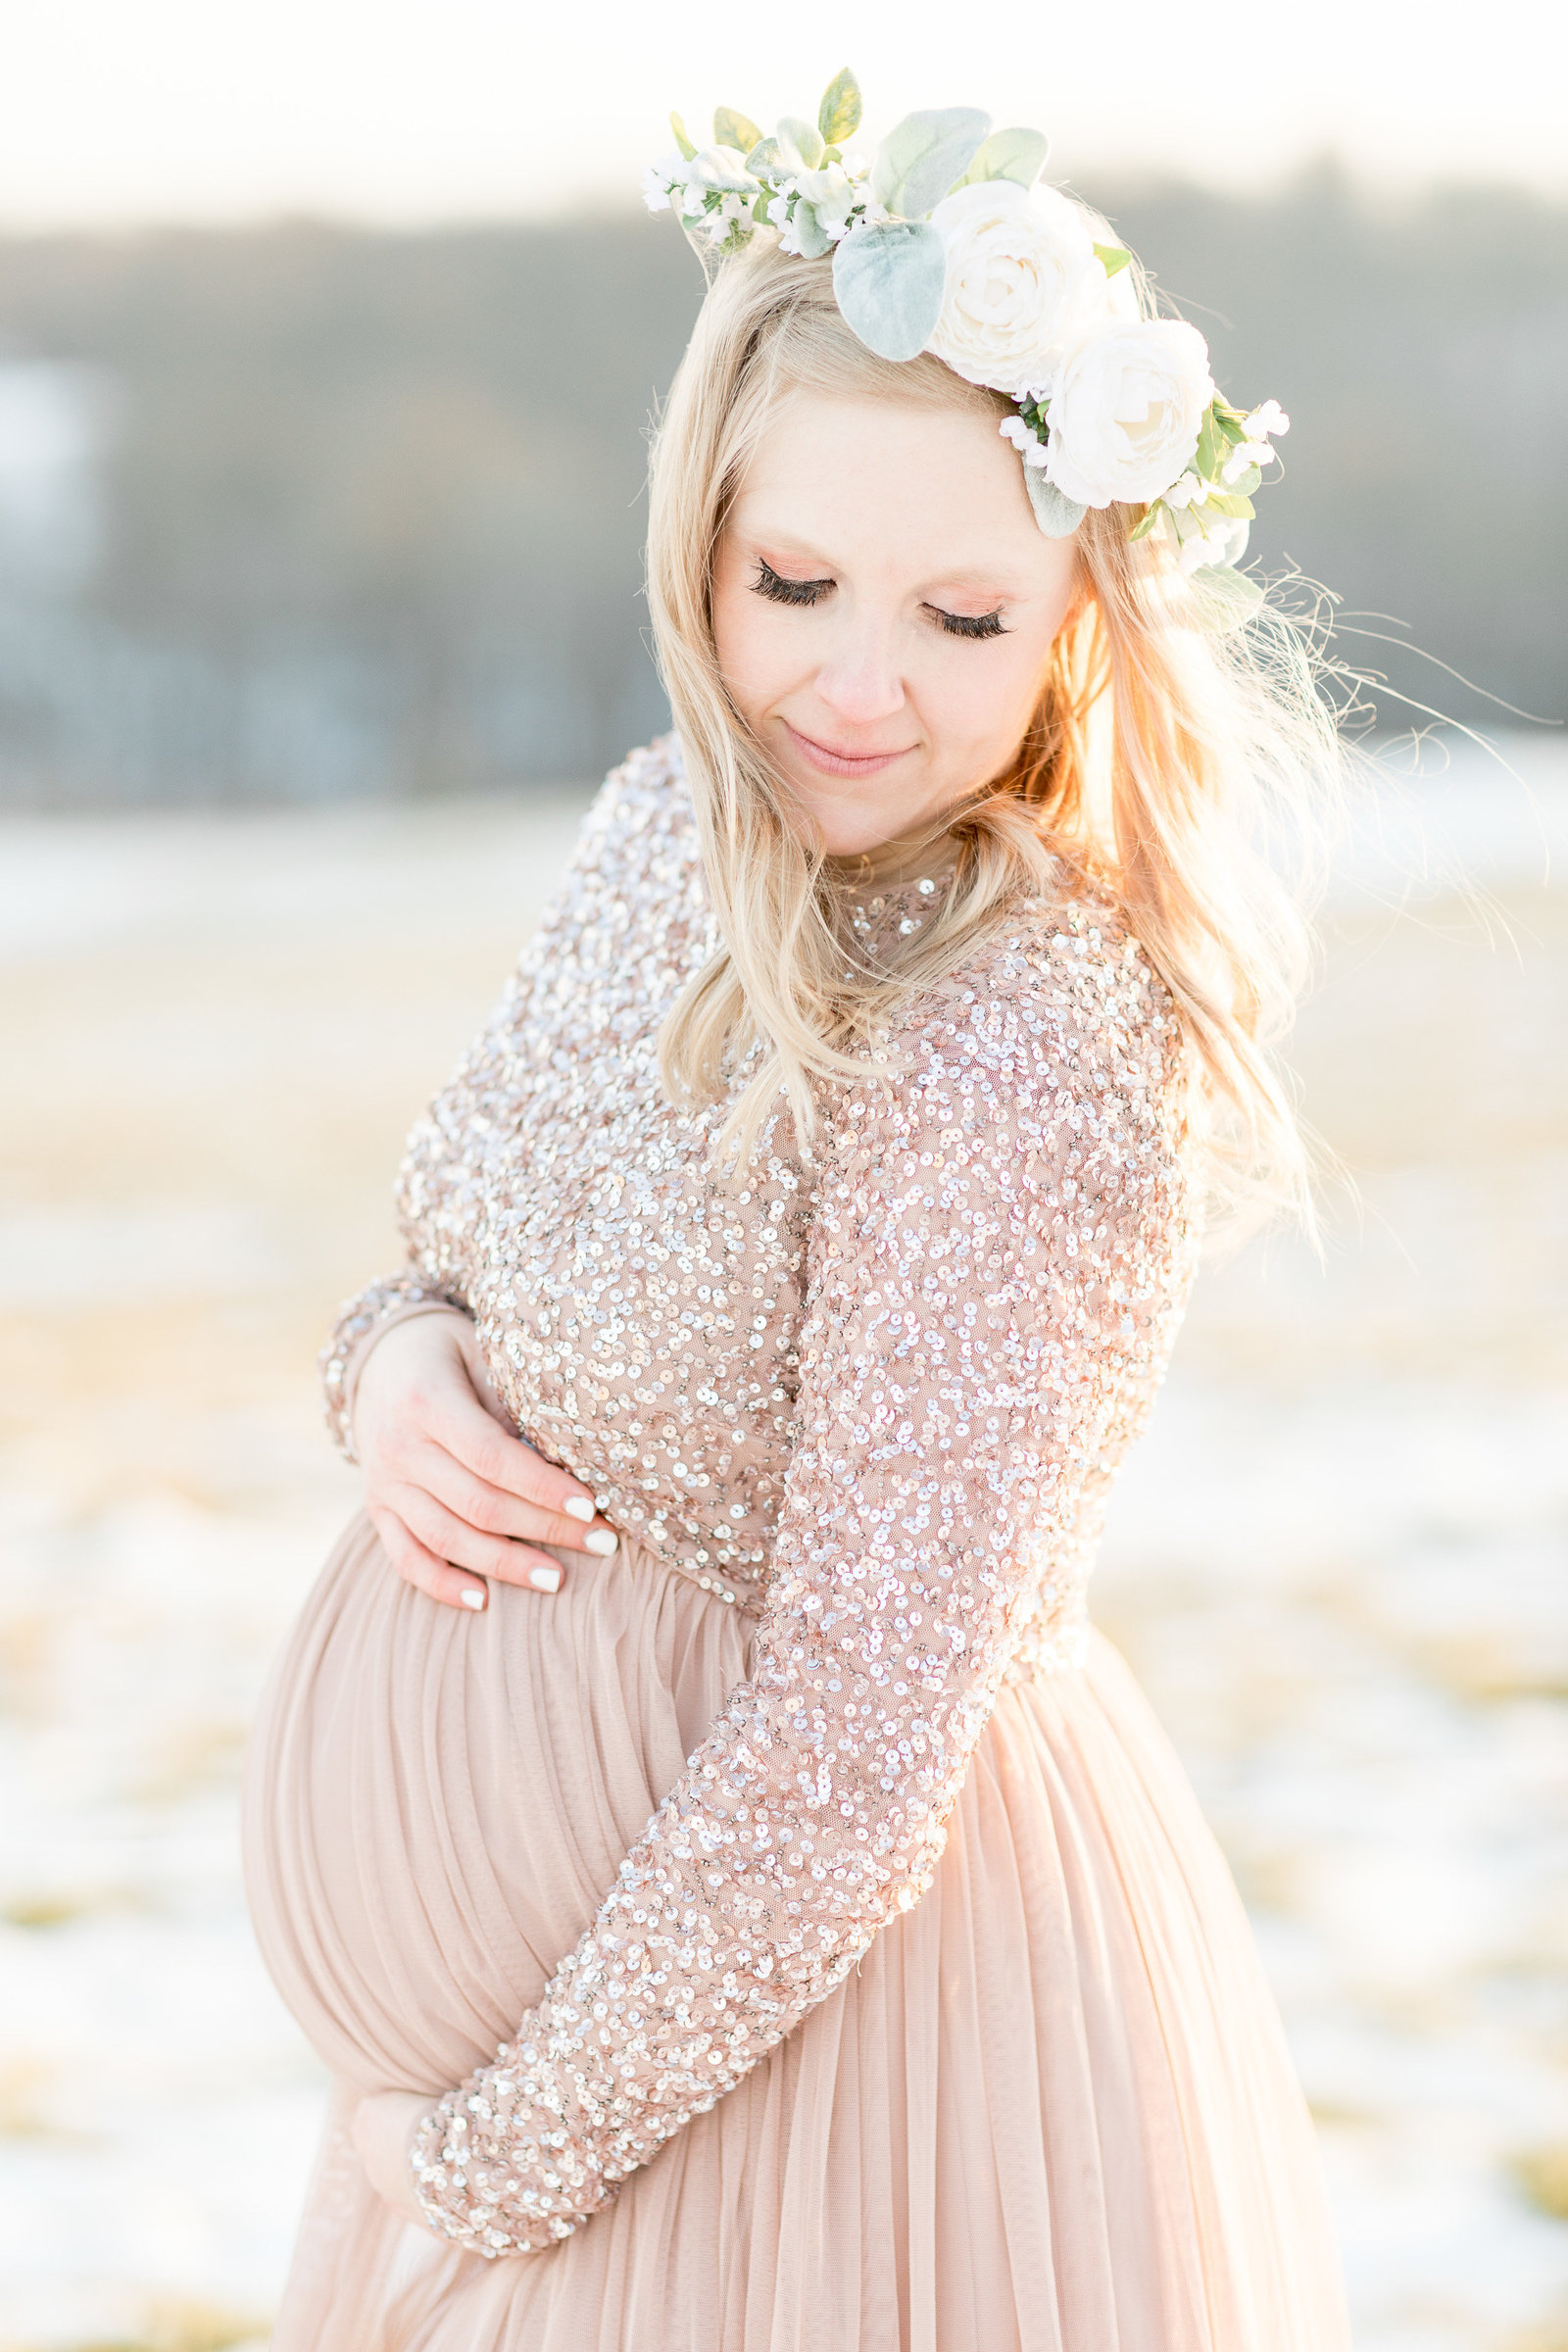 jess-dereck-snowy-winter-maternity-photo-session-002